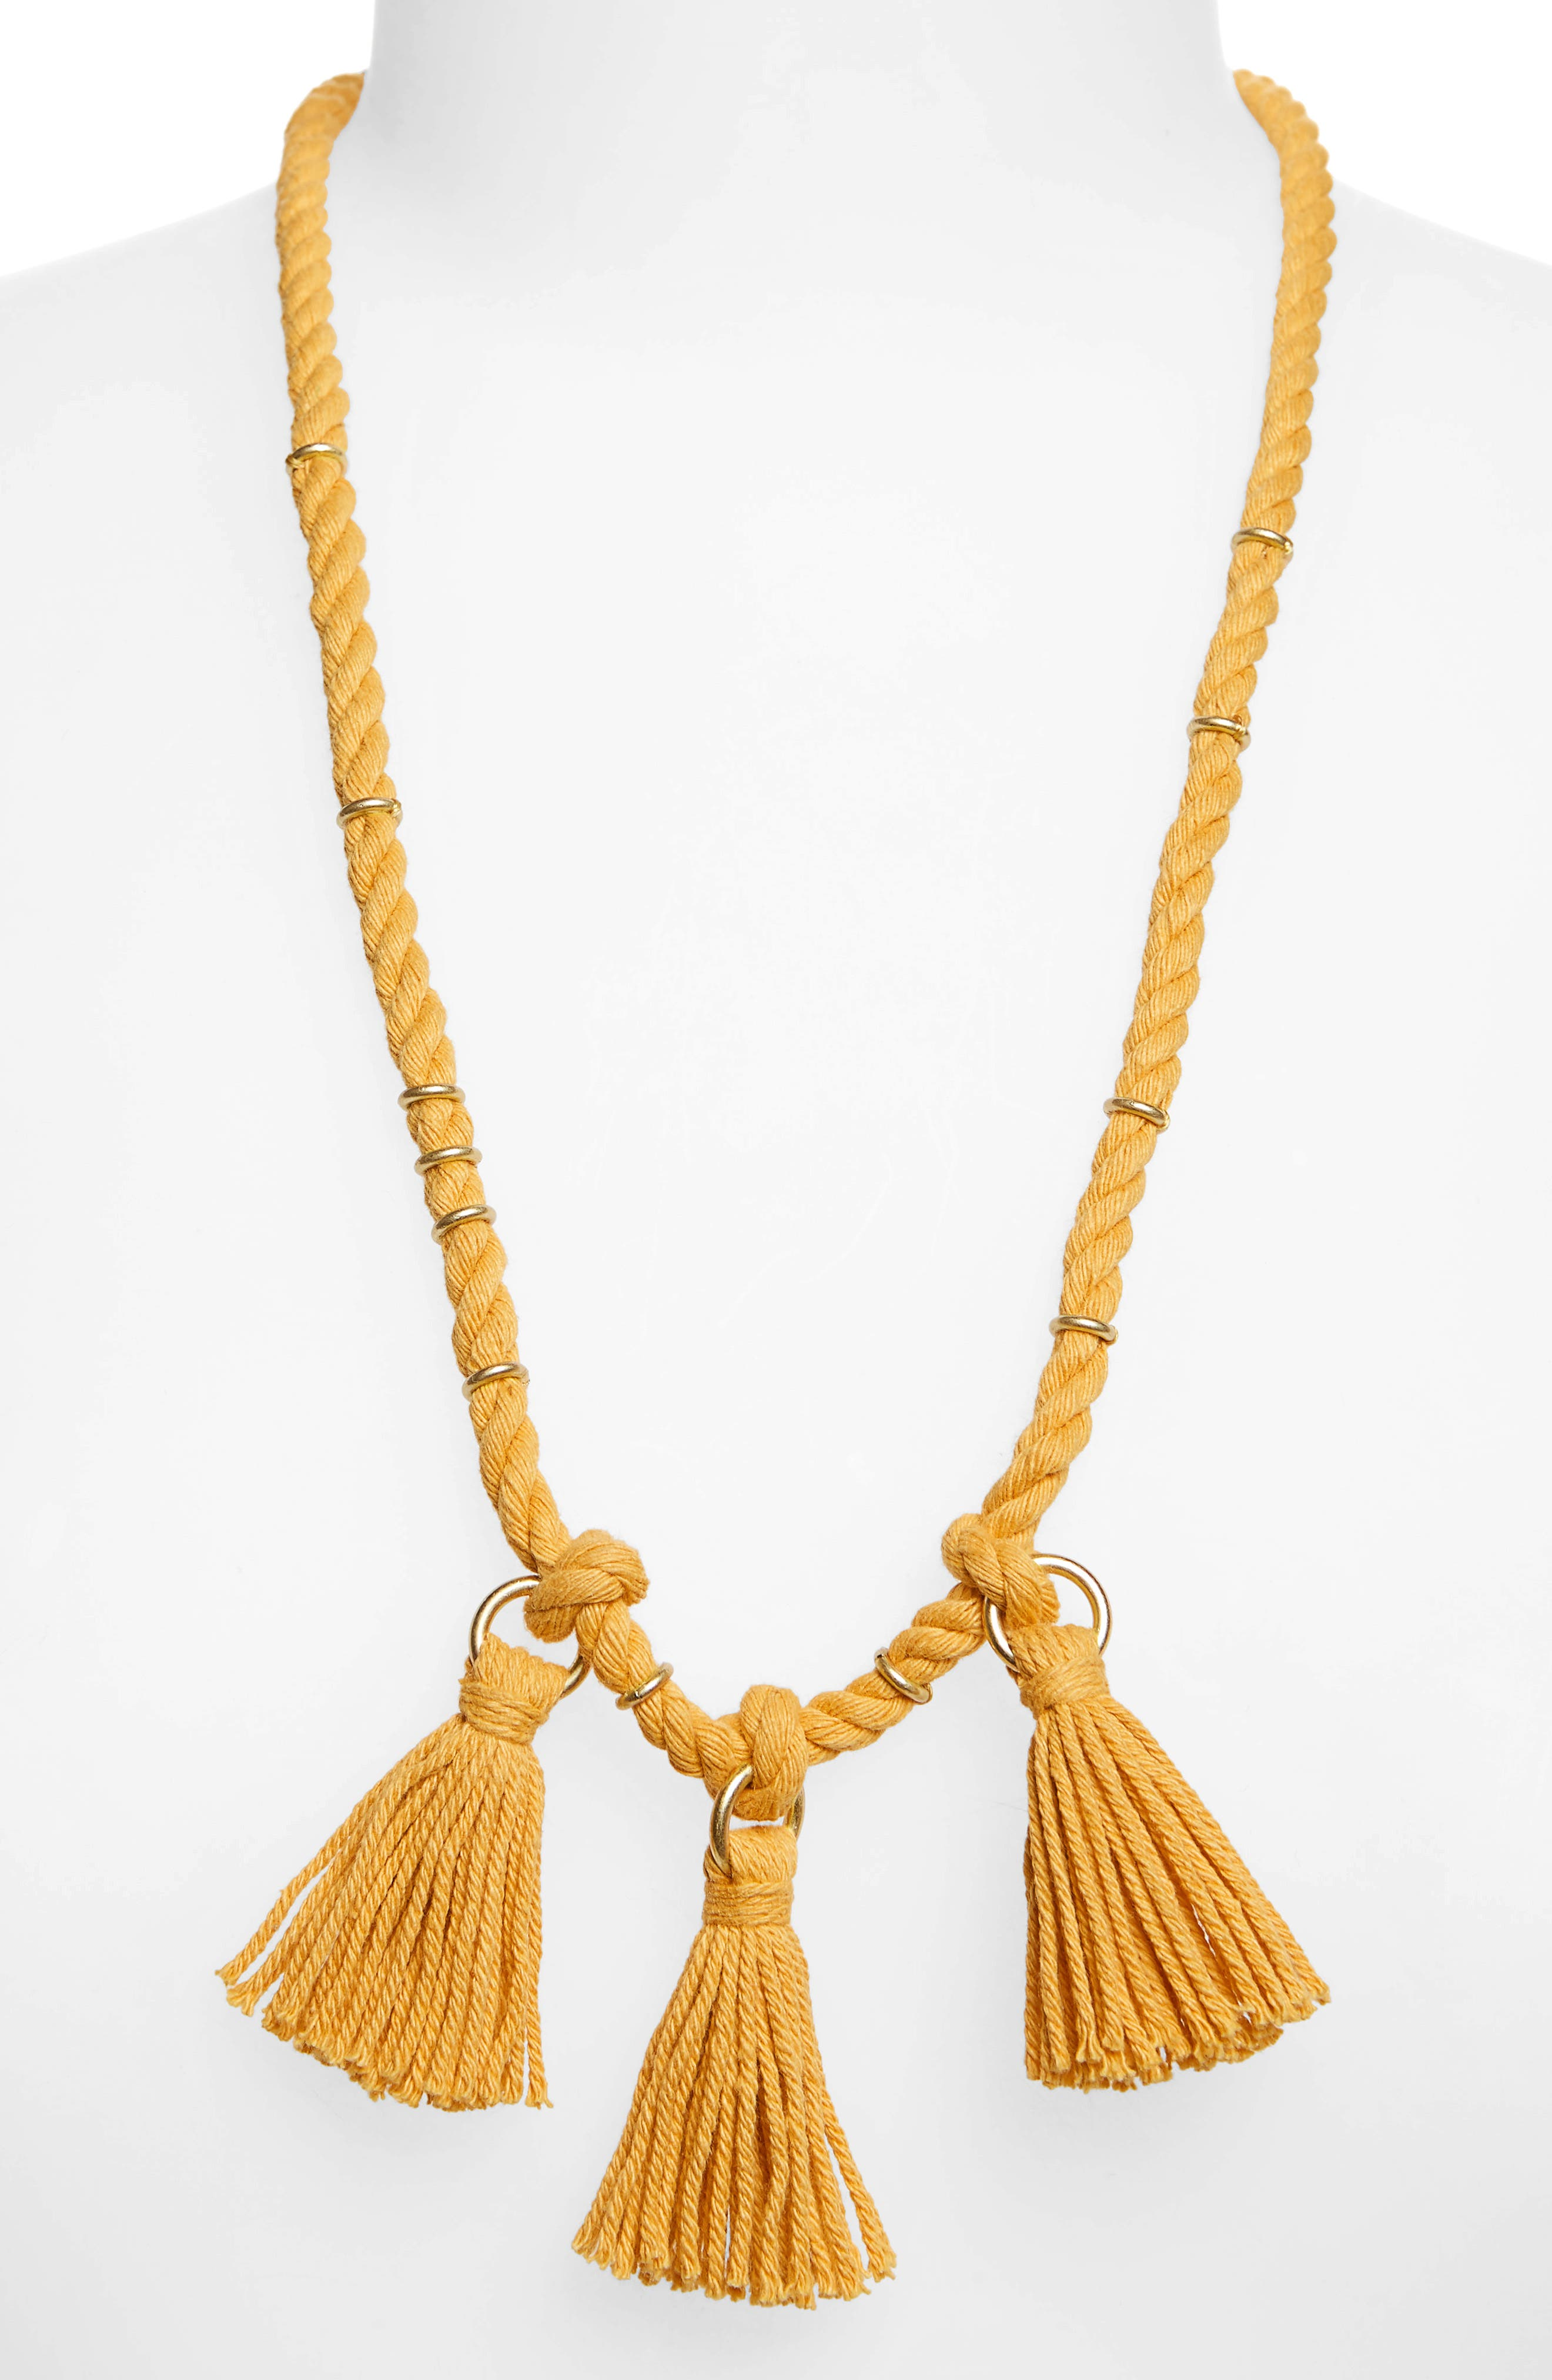 MADEWELL, Rope & Tassel Necklace, Alternate thumbnail 2, color, 717